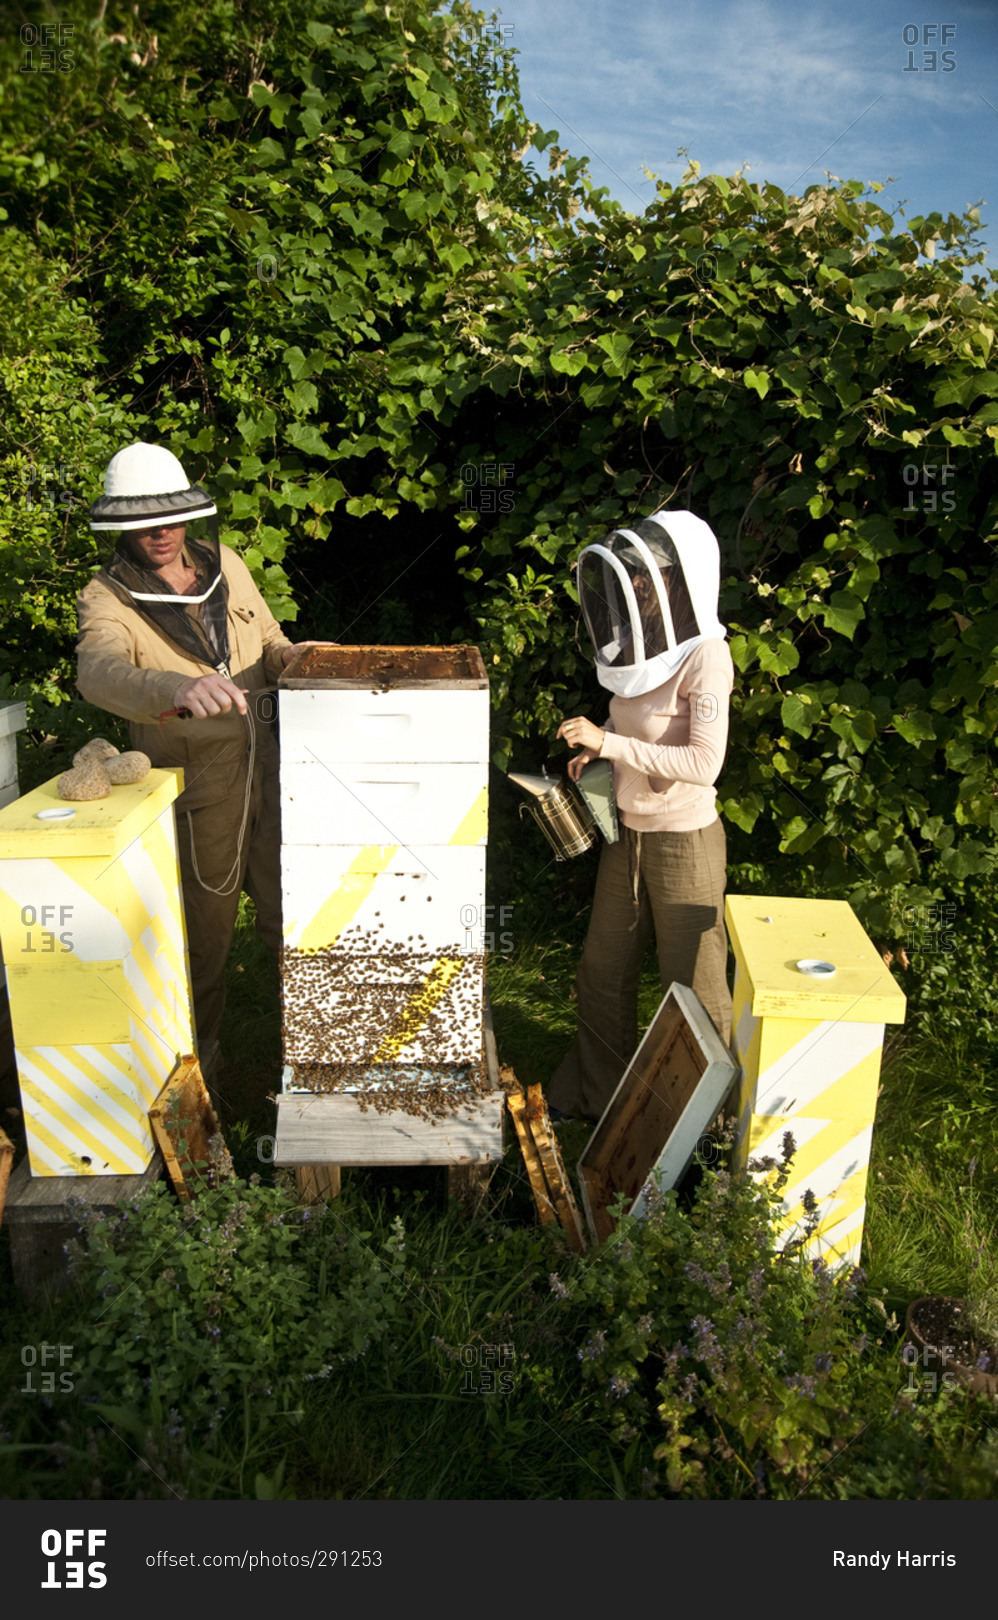 Montauk, New York - July 23, 2011: Beekeeping at Surf Shack which ...